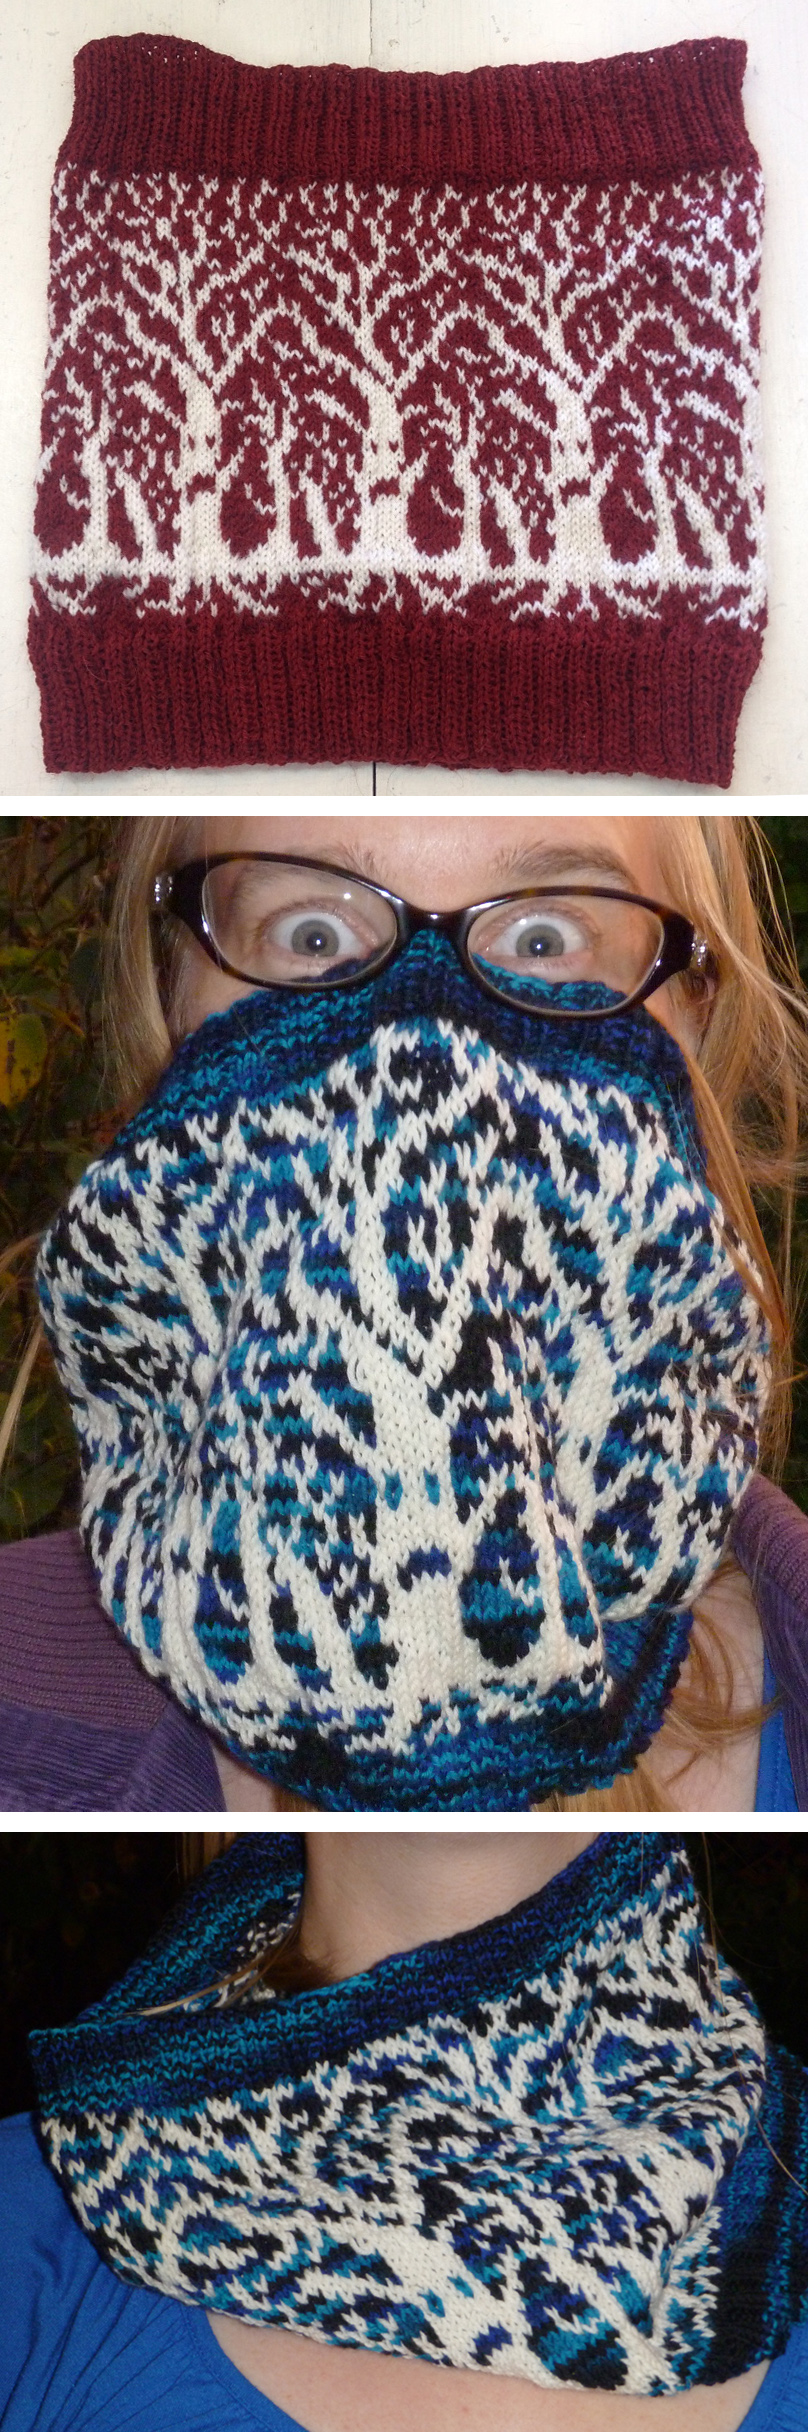 Free Knitting Pattern for Weirwood Cowl